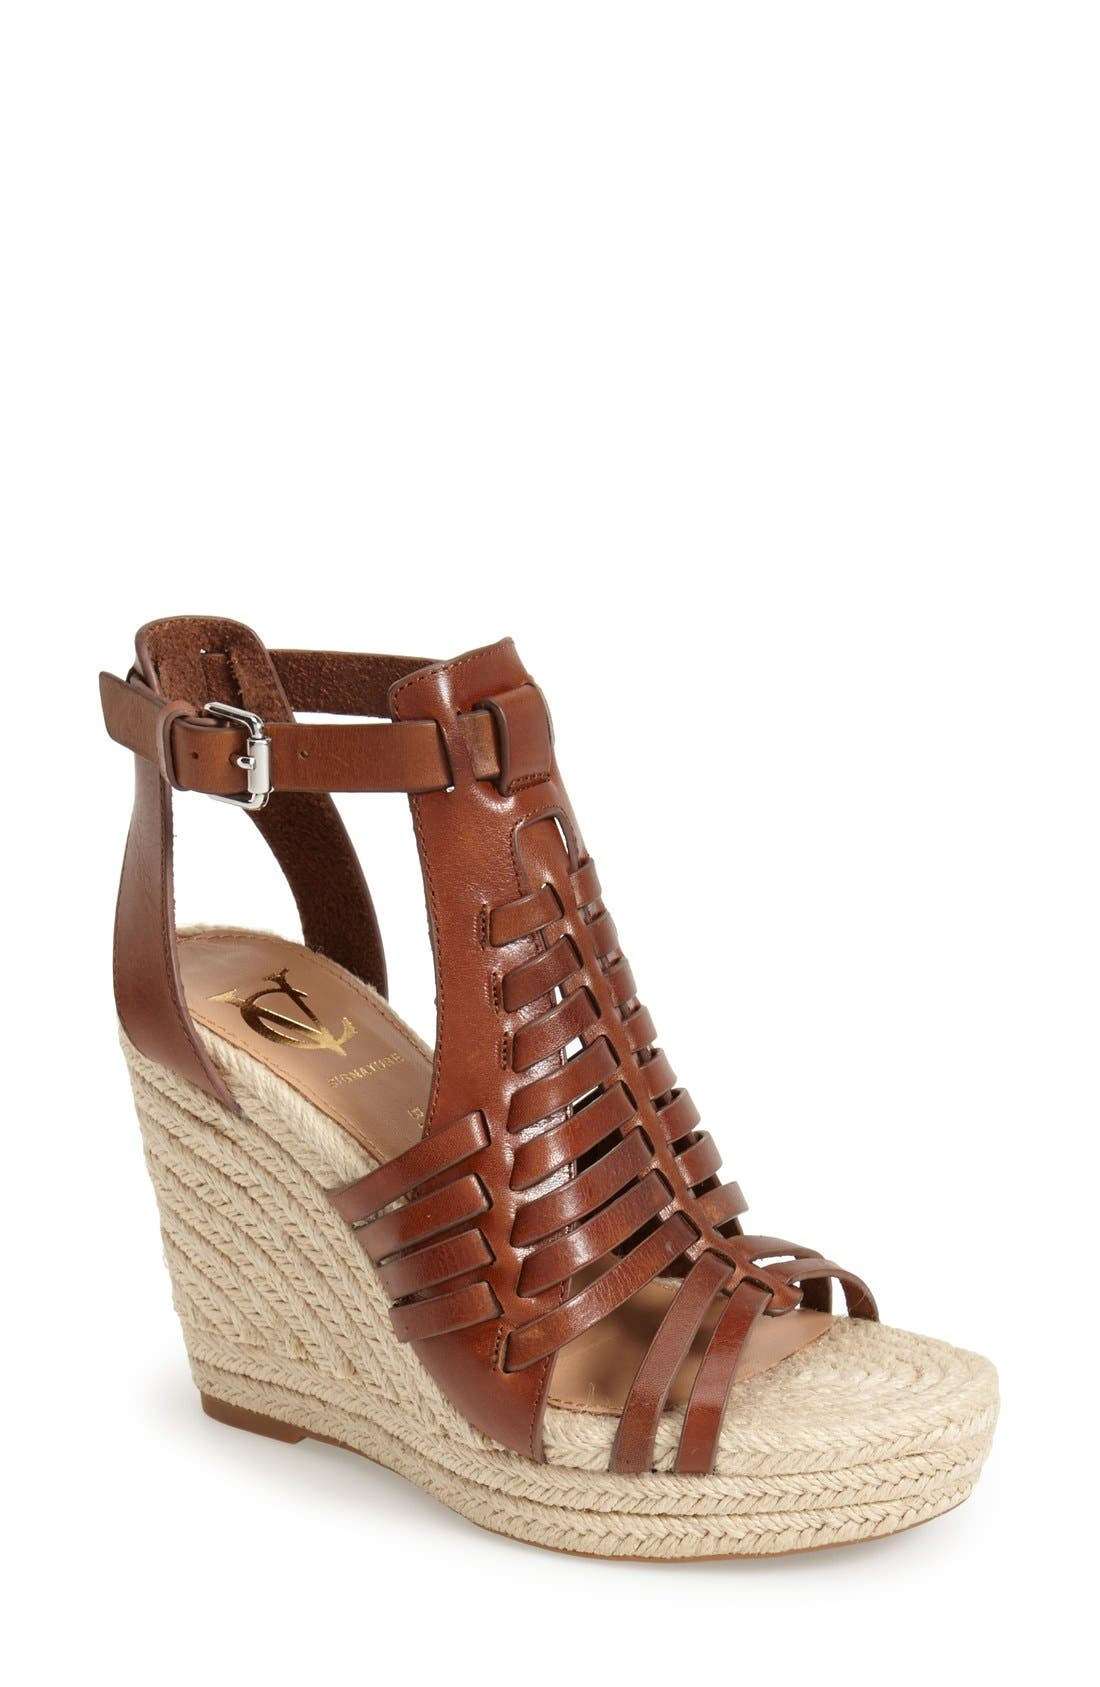 Alternate Image 1 Selected - VC Signature 'Danessa' Wedge Sandal (Women)